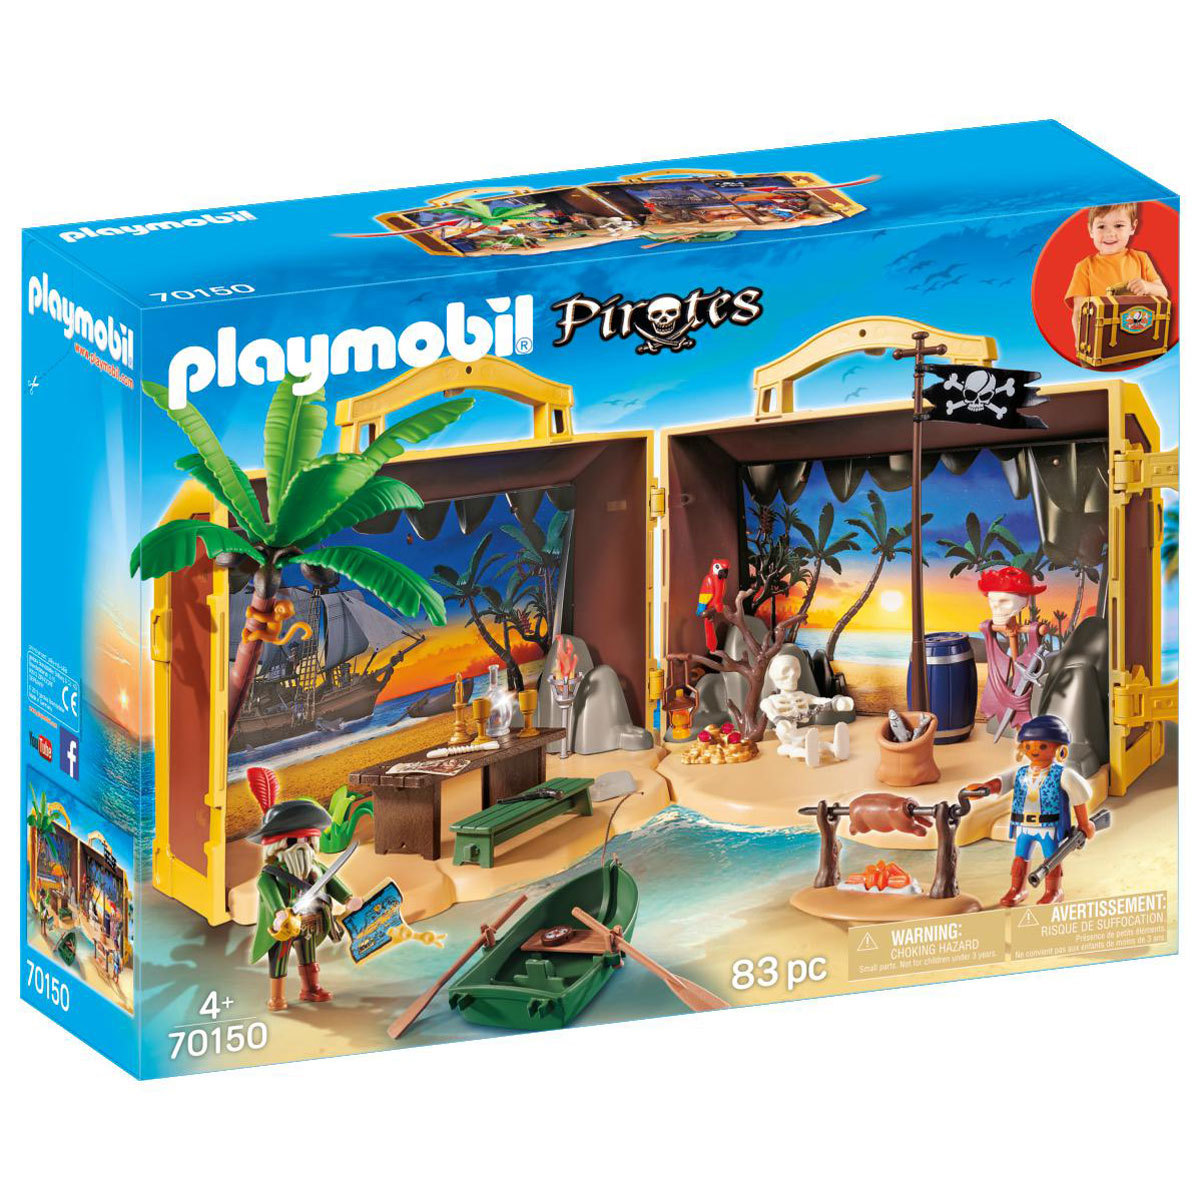 Playmobil 70150 Take Along Pirates Treasure Island from Early Learning Center